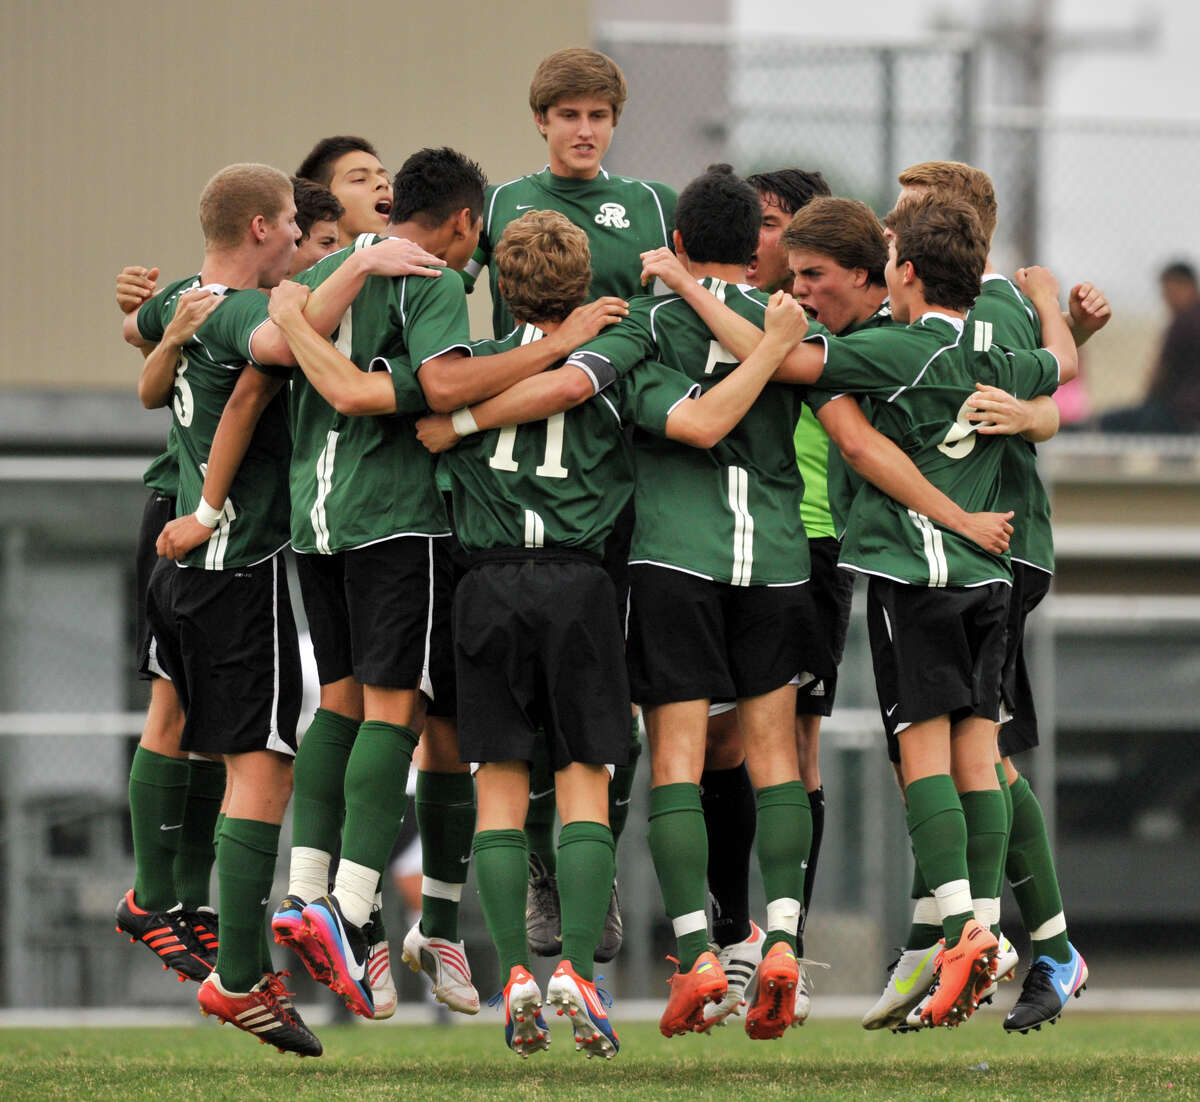 Reagan High School soccer players huddle and jump prior to the start of their District 26-5A championship game versus Churchill Tuesday evening.